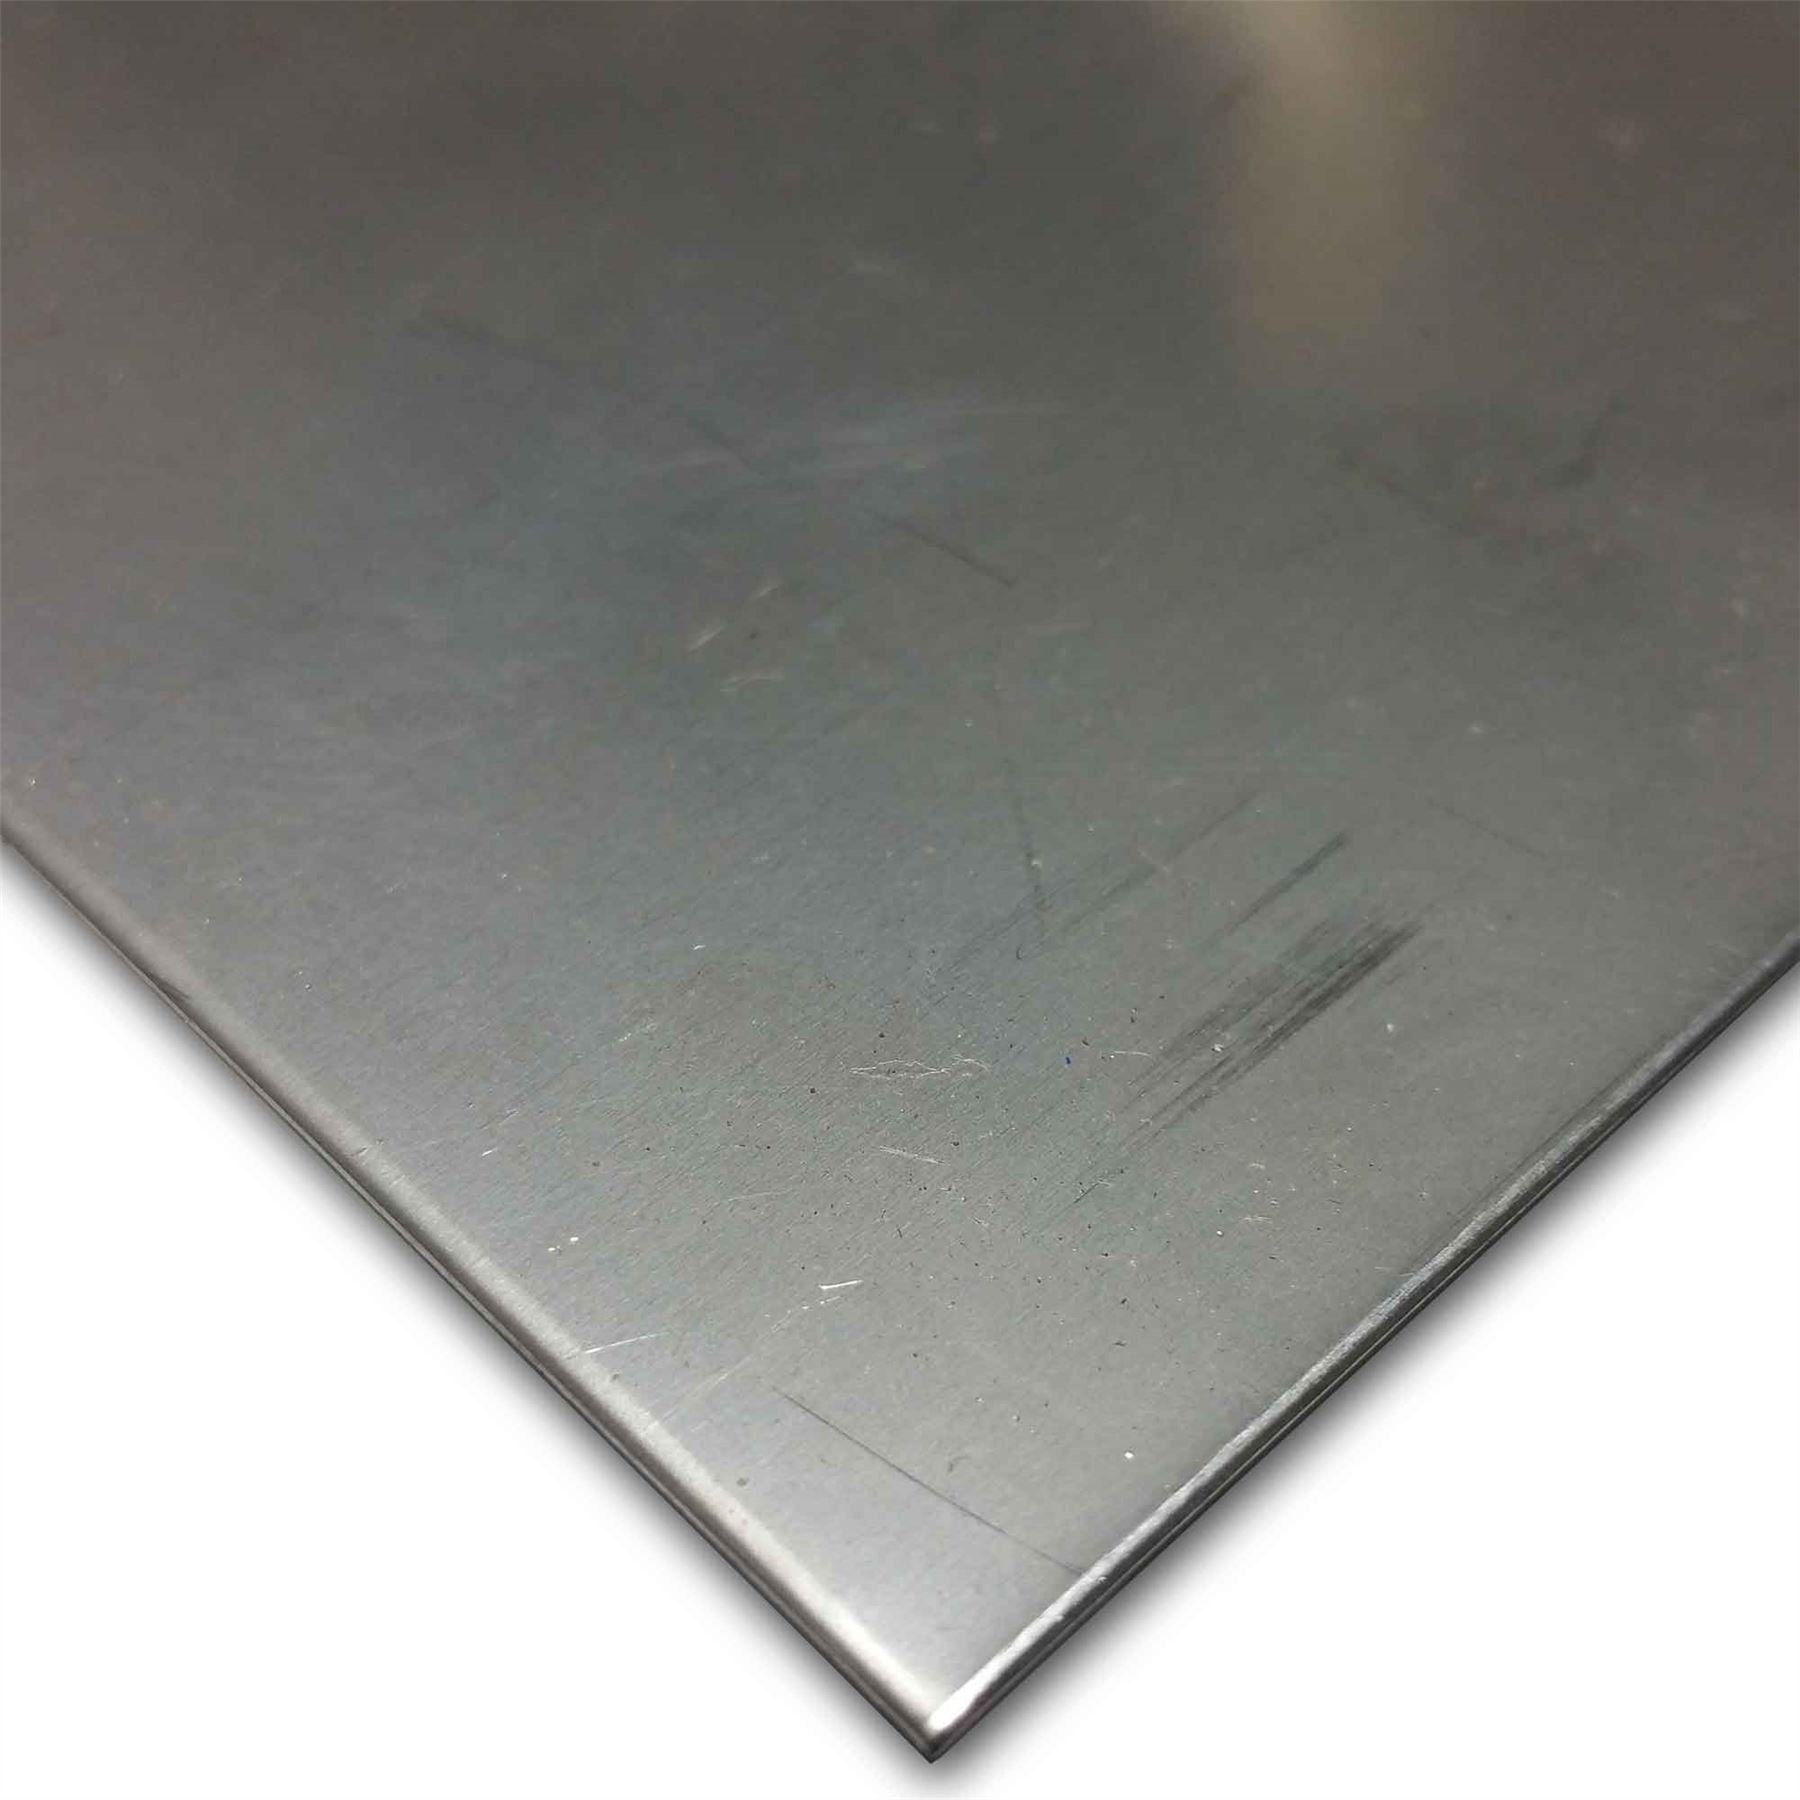 "Online Metal Supply 304 Stainless Steel Sheet .018"" (26 ga.) x 24"" x 48"" - 2B Finish"